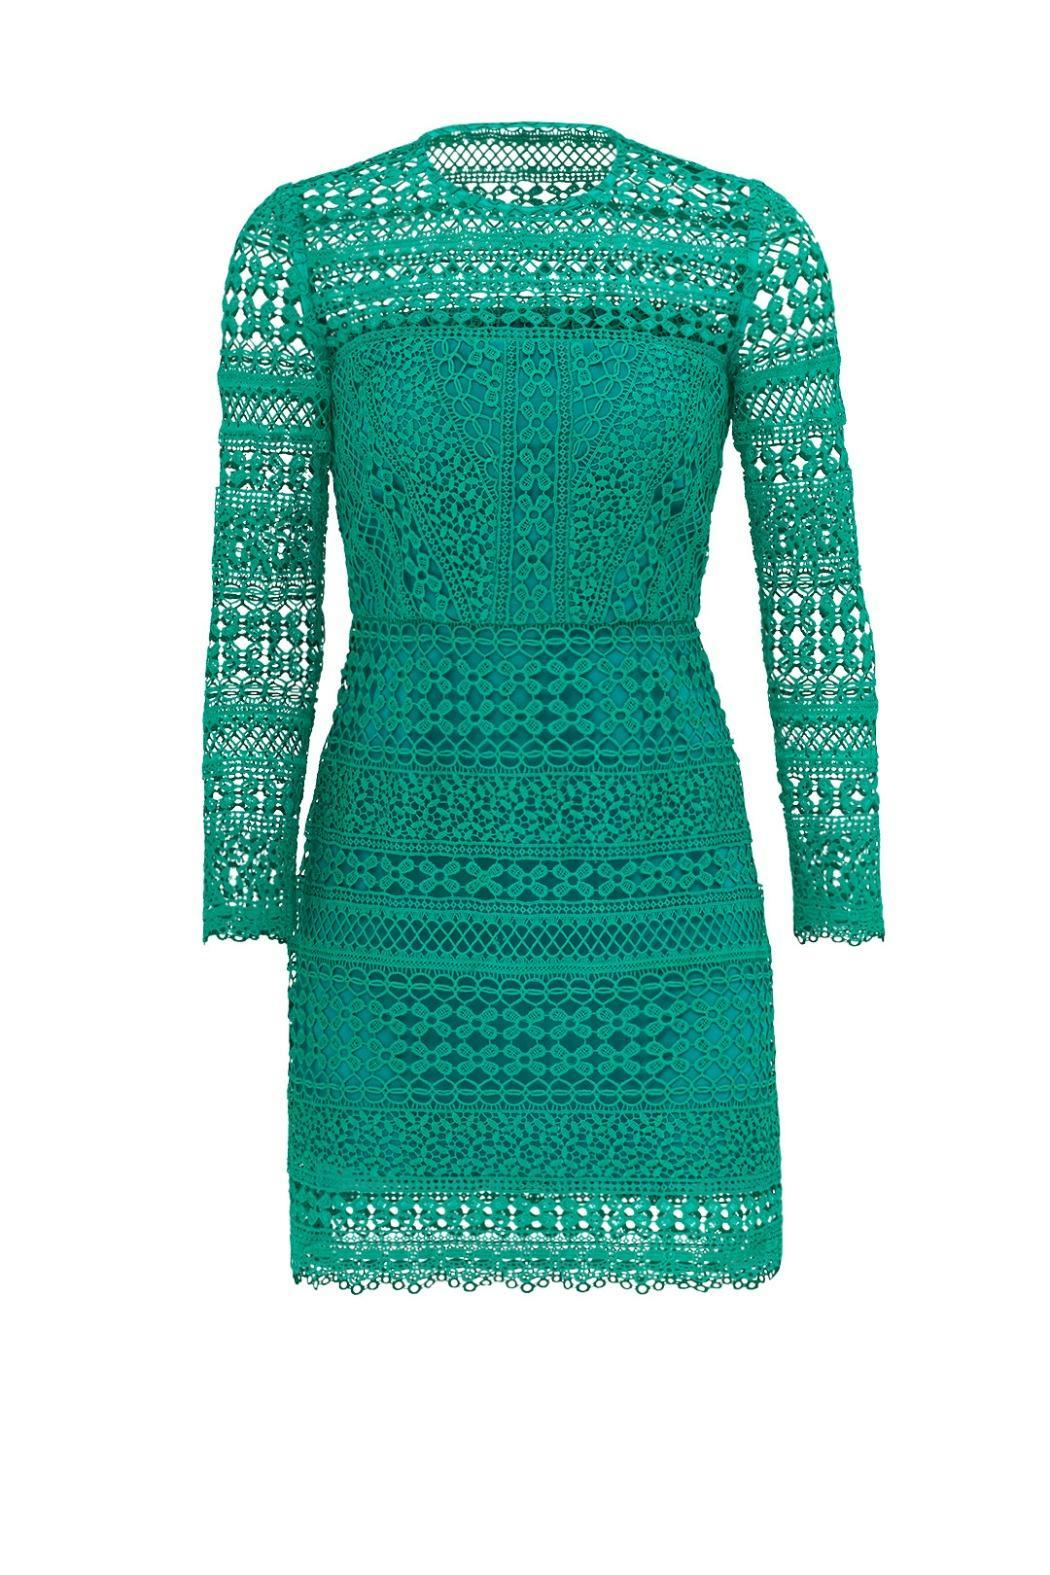 Cynthia Rowley Geo Lace Dress - Front Cropped Image